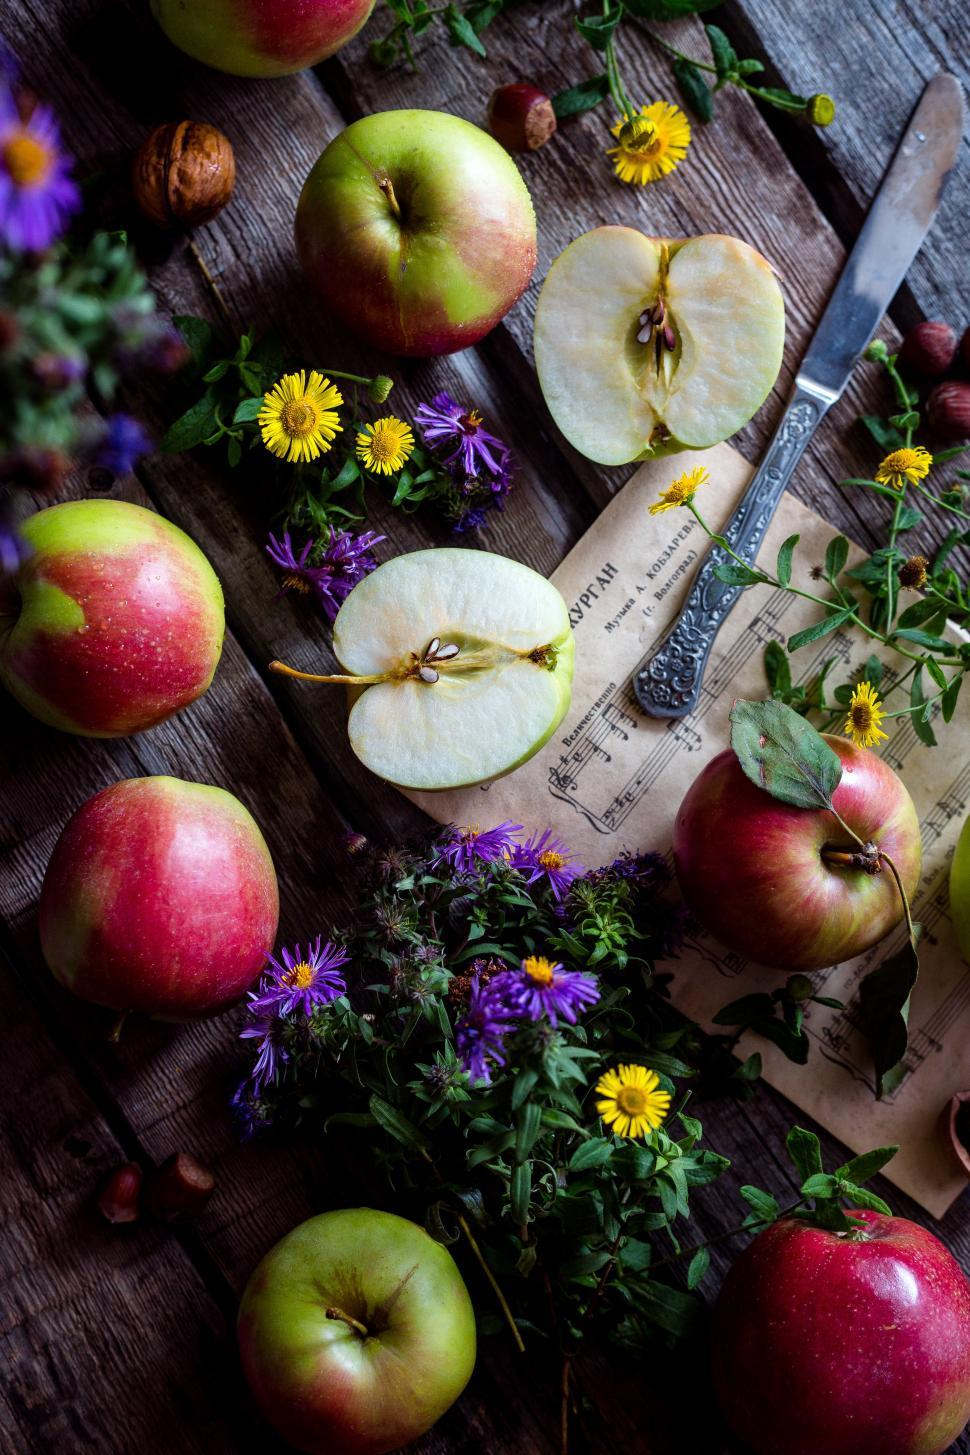 Download Free Stock HD Photo of Apples and flowers on desk Online